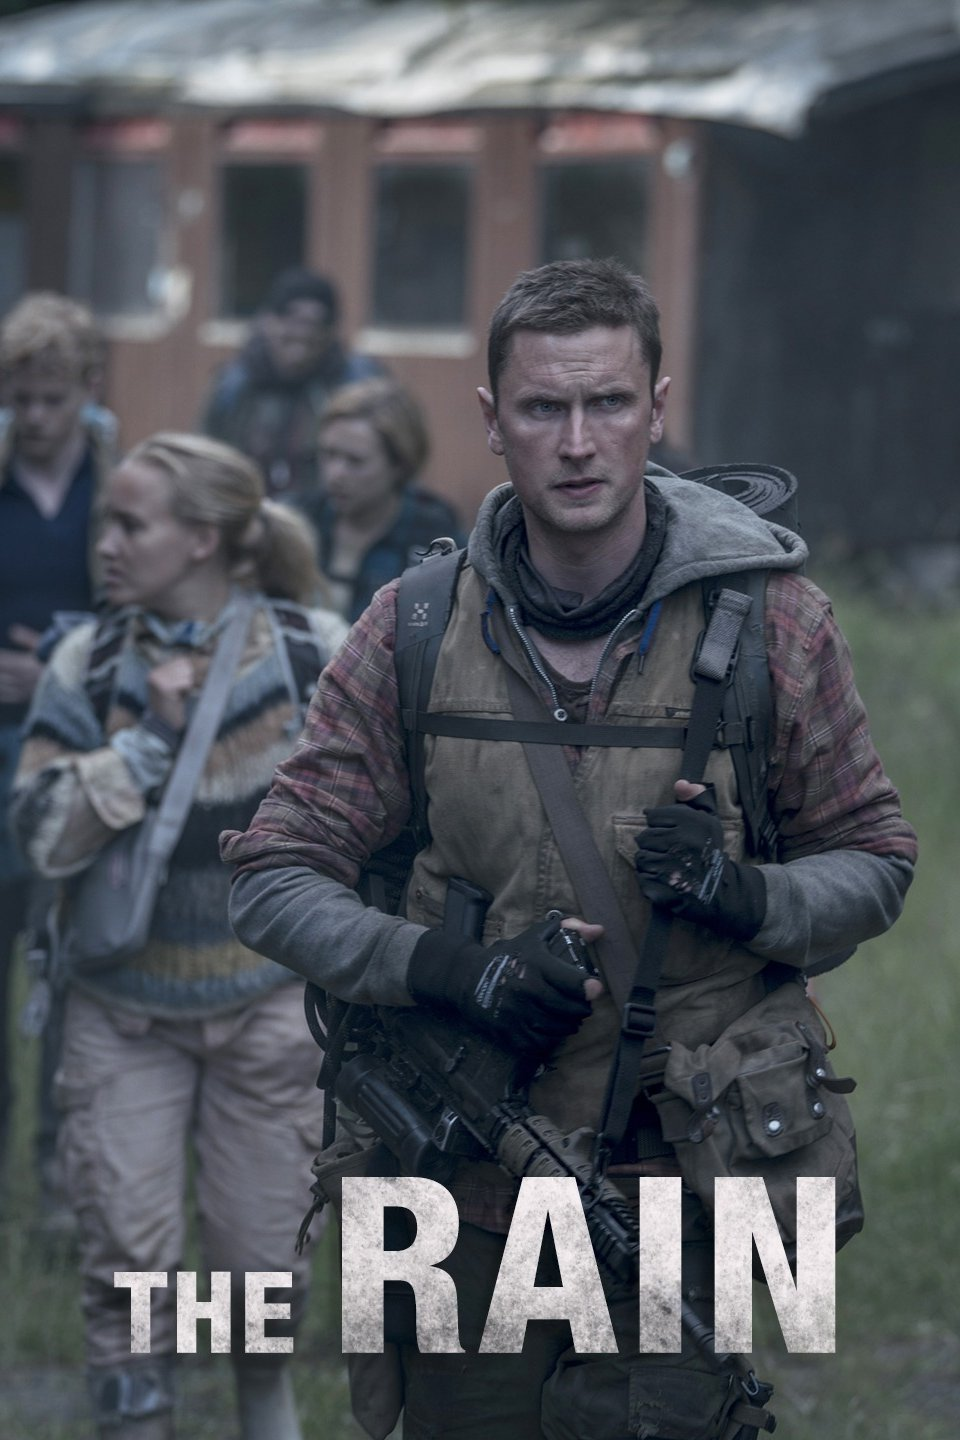 The Rain - An interesting series about a rain carried virus that wipes out the majority of Scandinavia. After spending 6 years in a bunker two survivors team up with the very few survivors left and head out on a dangerous quest throughout the abandoned land for the search of life.